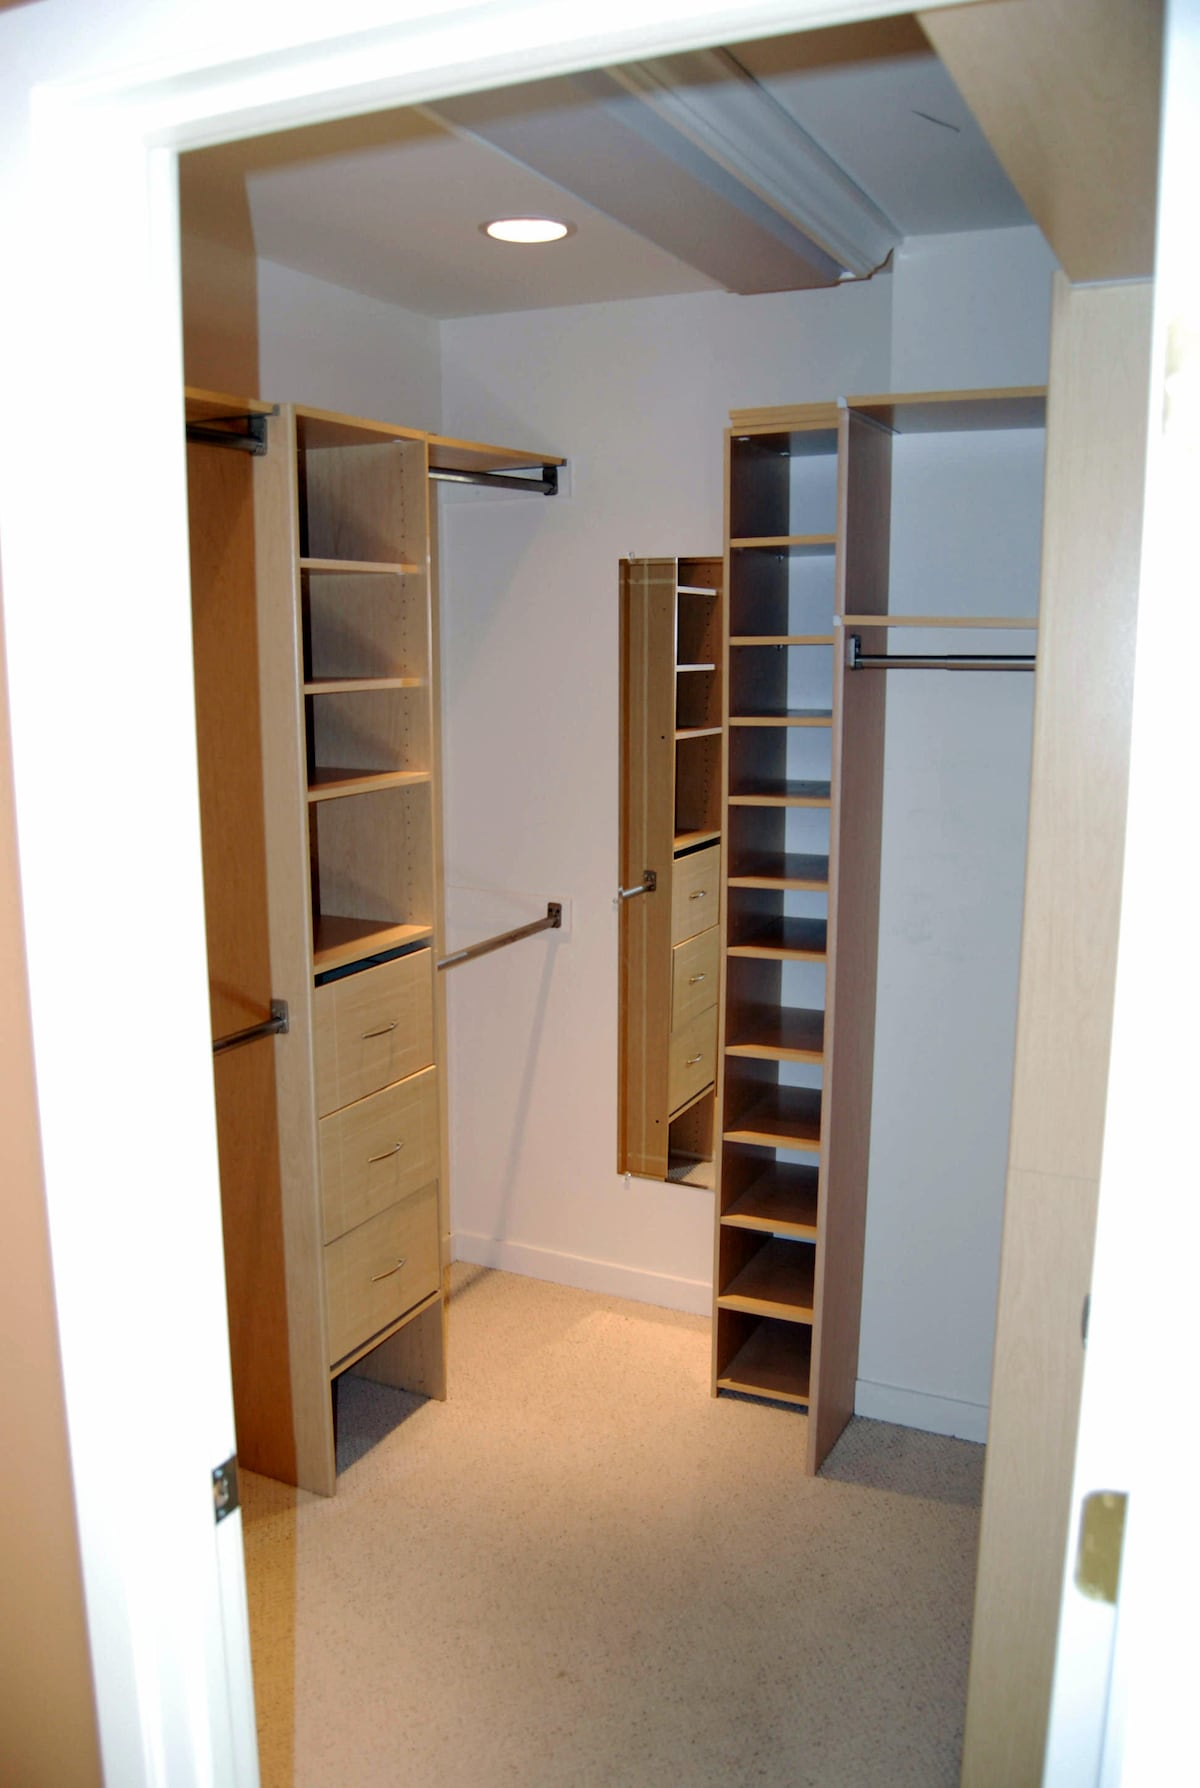 FULL WALK-IN CLOSET IN MASTER SUITE